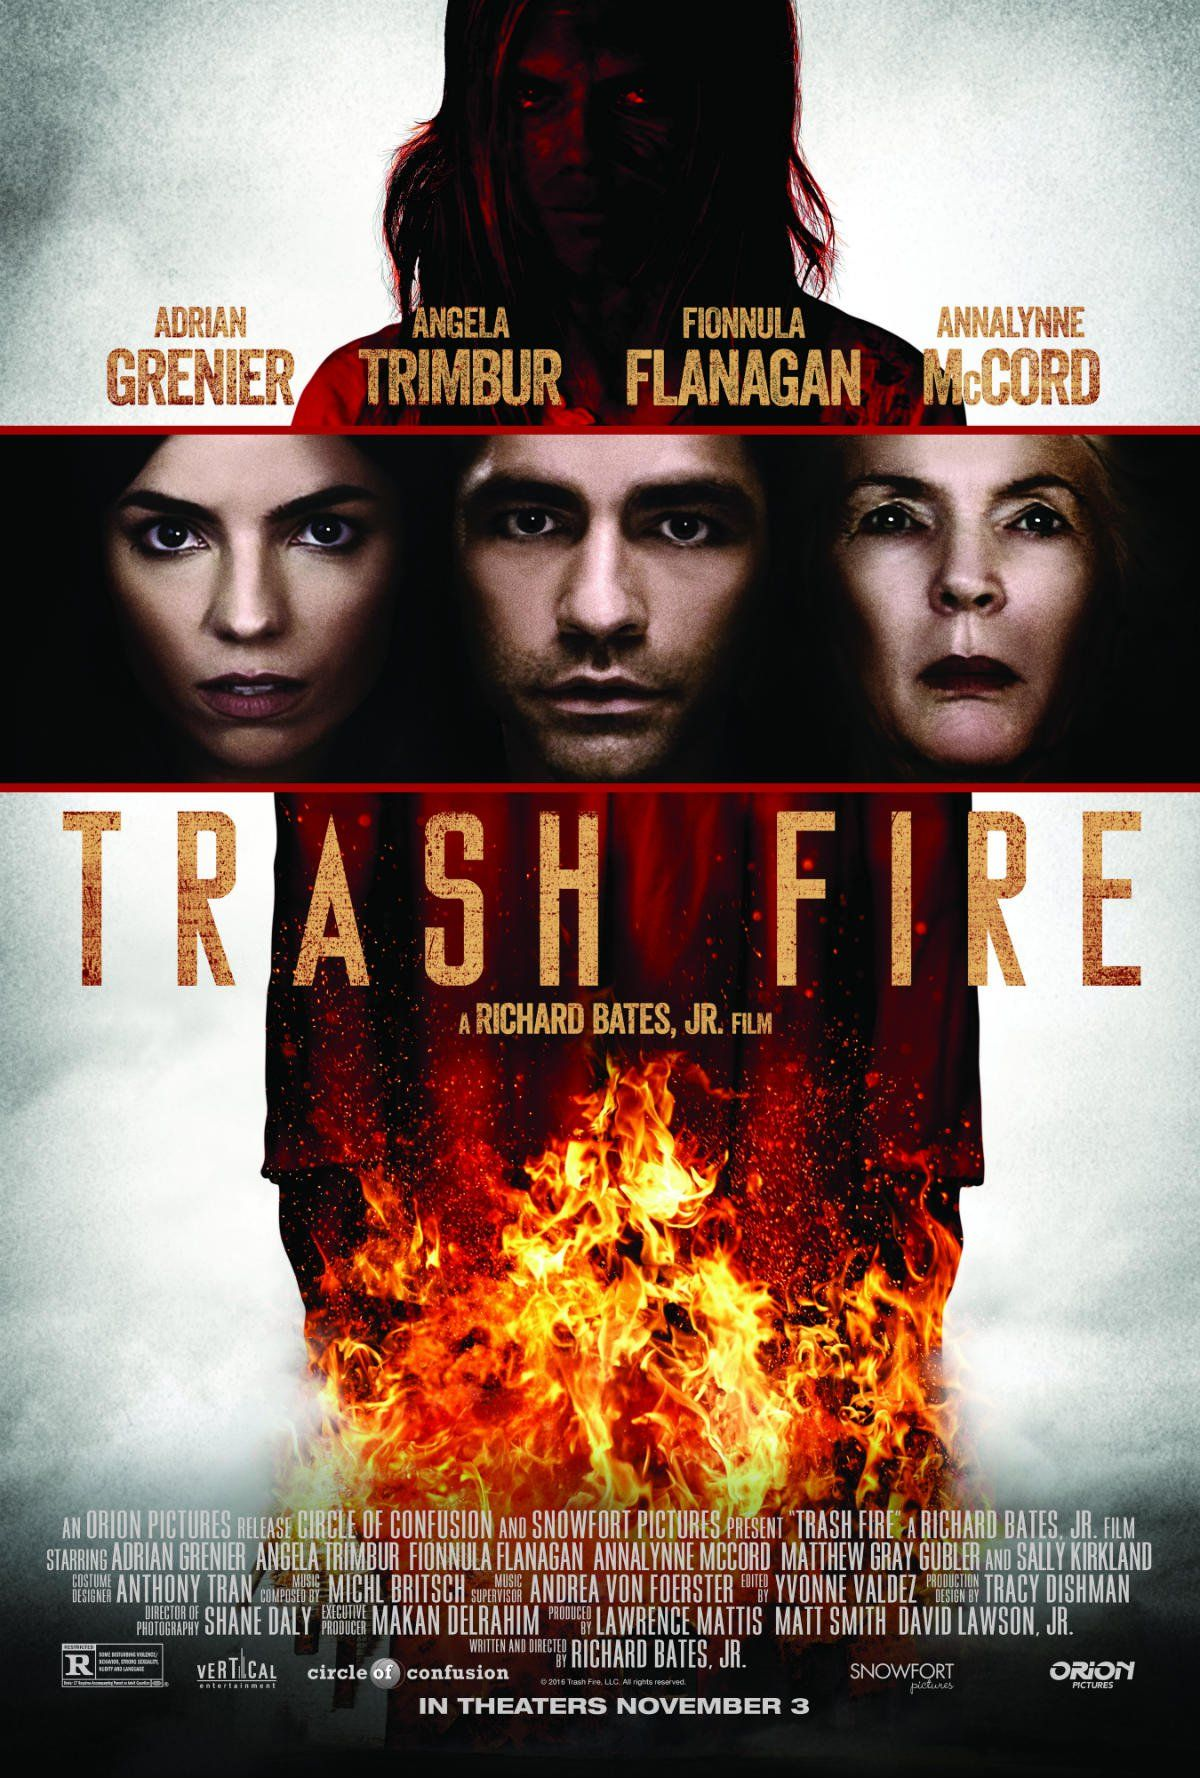 Trash Fire - Upcoming Horror Movie: Richard Bates Jr.'s Trash Fire (2016) releases in movie theaters this upcoming November… #Movie #Horror